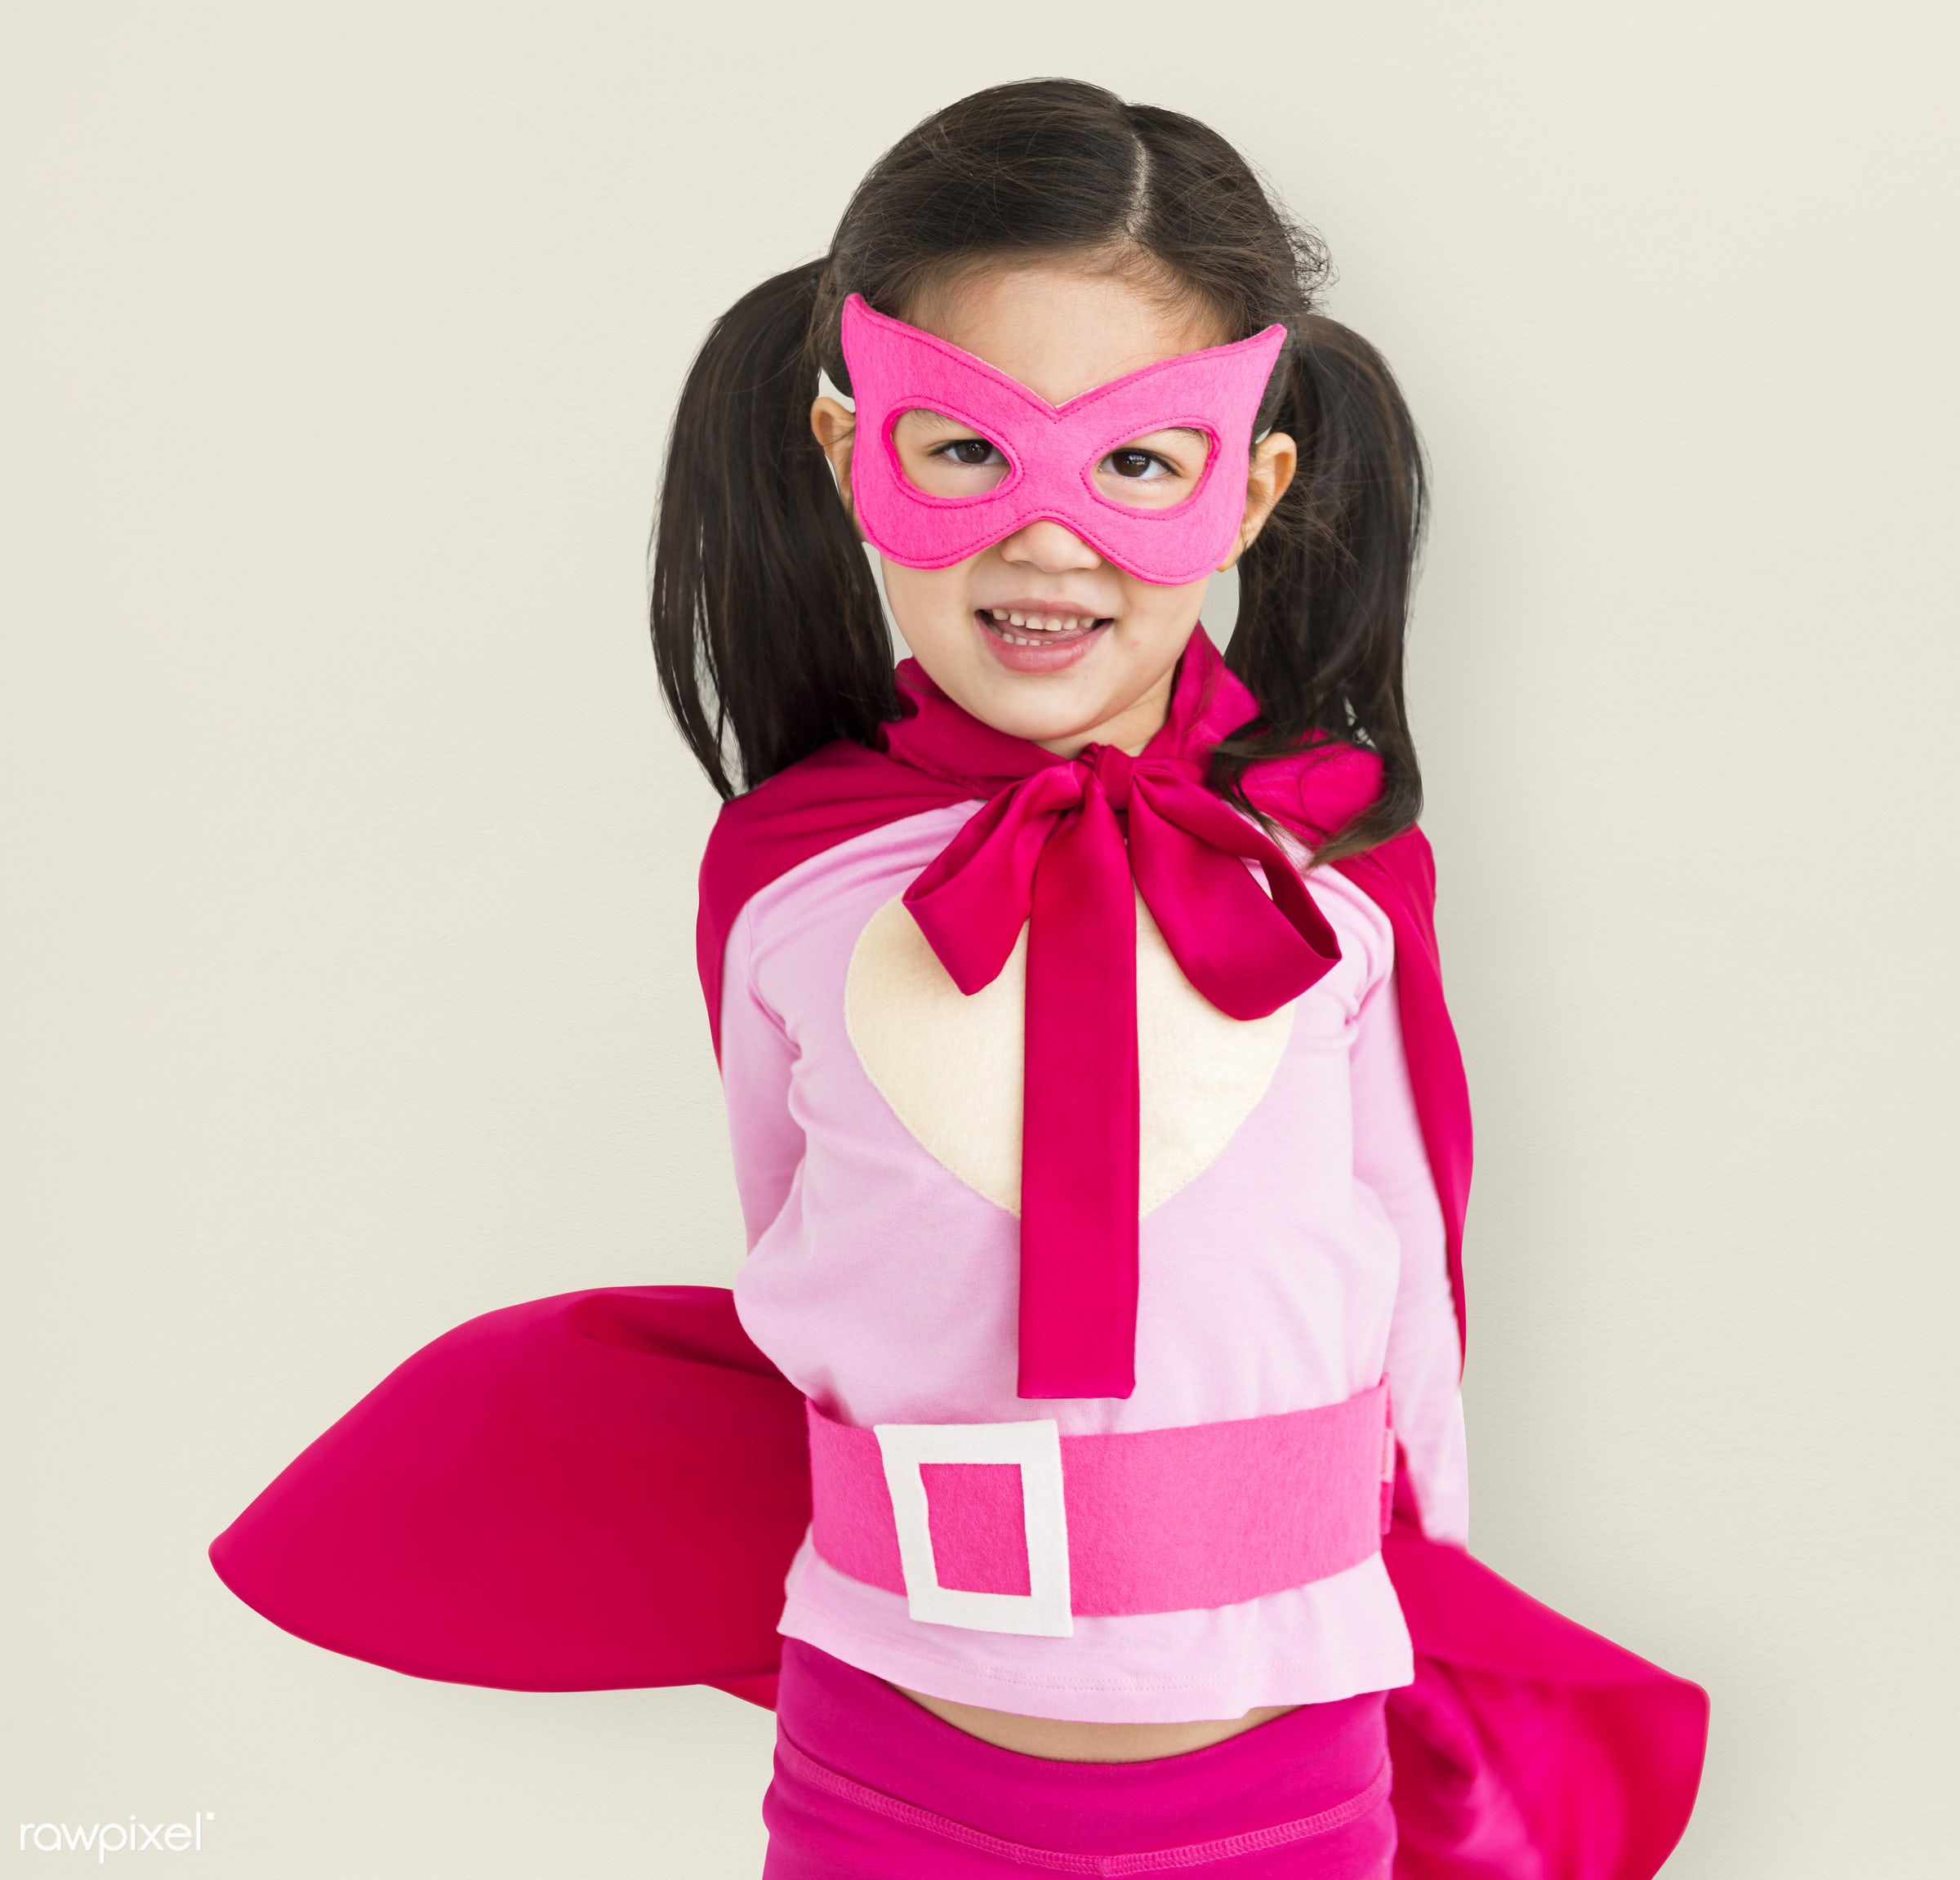 alone, asian, cheerful, child, costume, isolated, kid, mask, one, playful, smiling, superhero, young, youth, girl